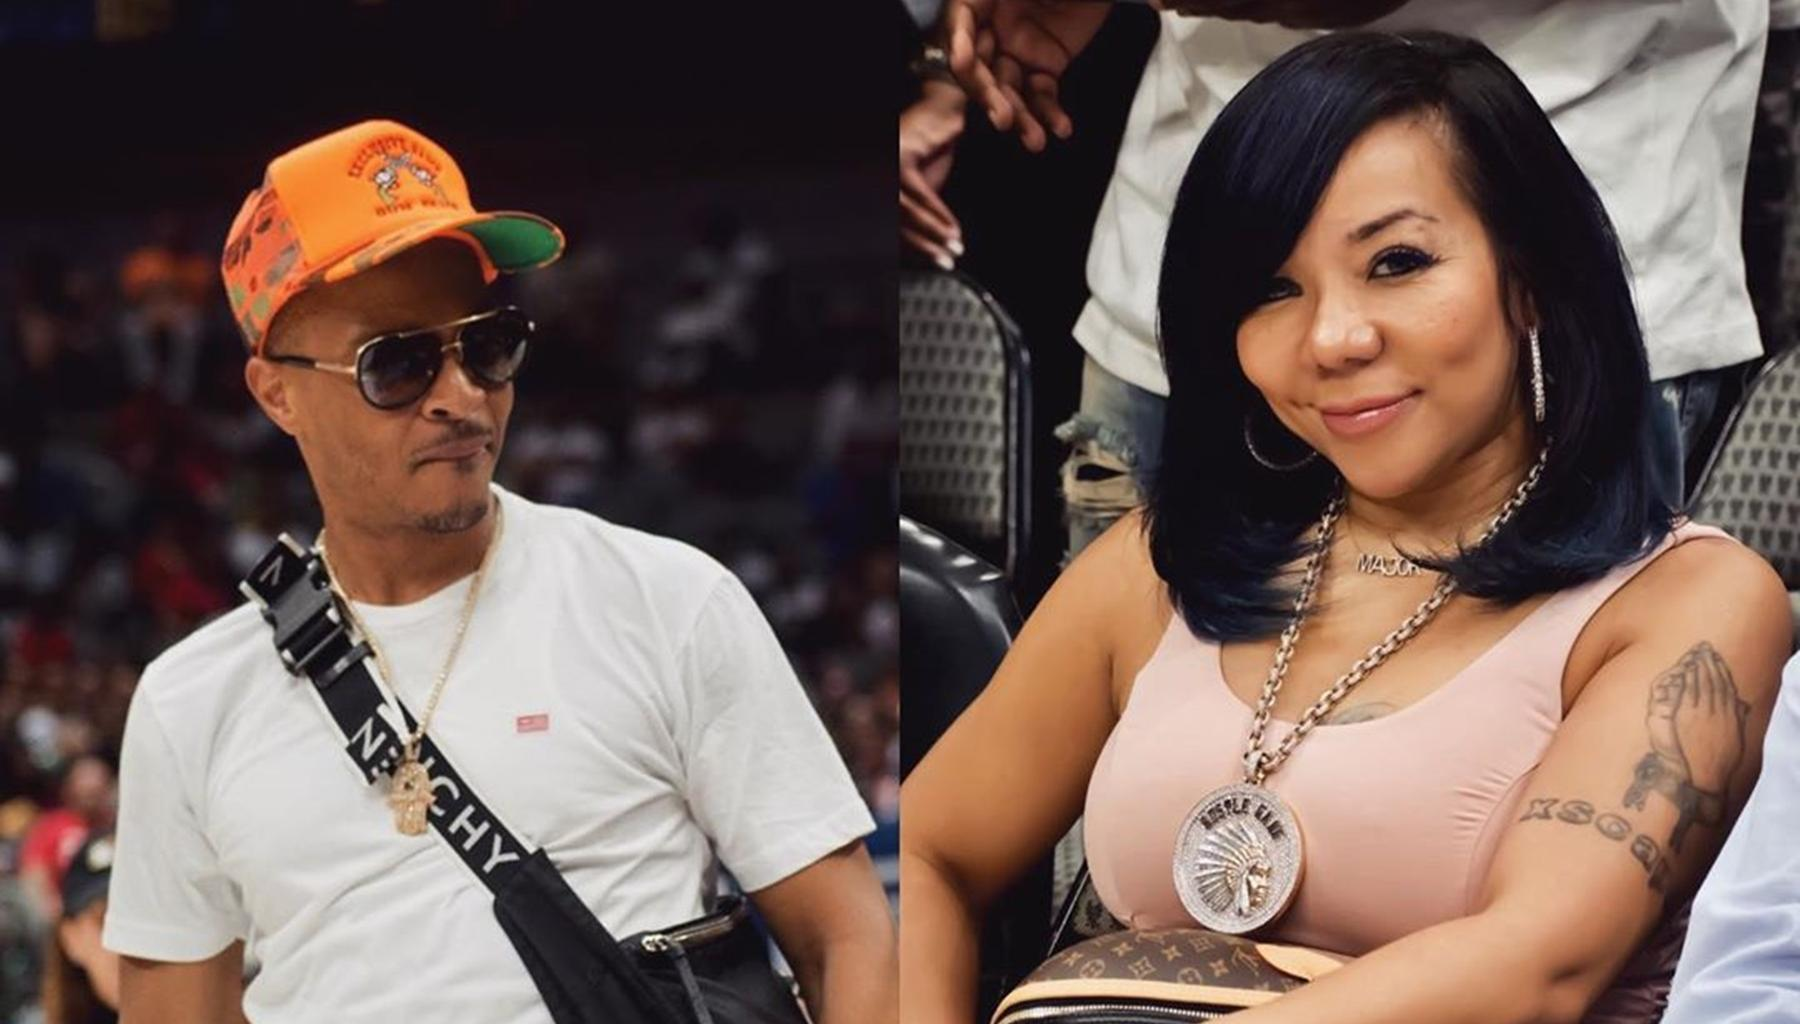 T.I. Looks Ready For Trouble Over Wife Tiny Harris's Revealing Dress In New Video -- Xscape Diva Seems Good To Go Too